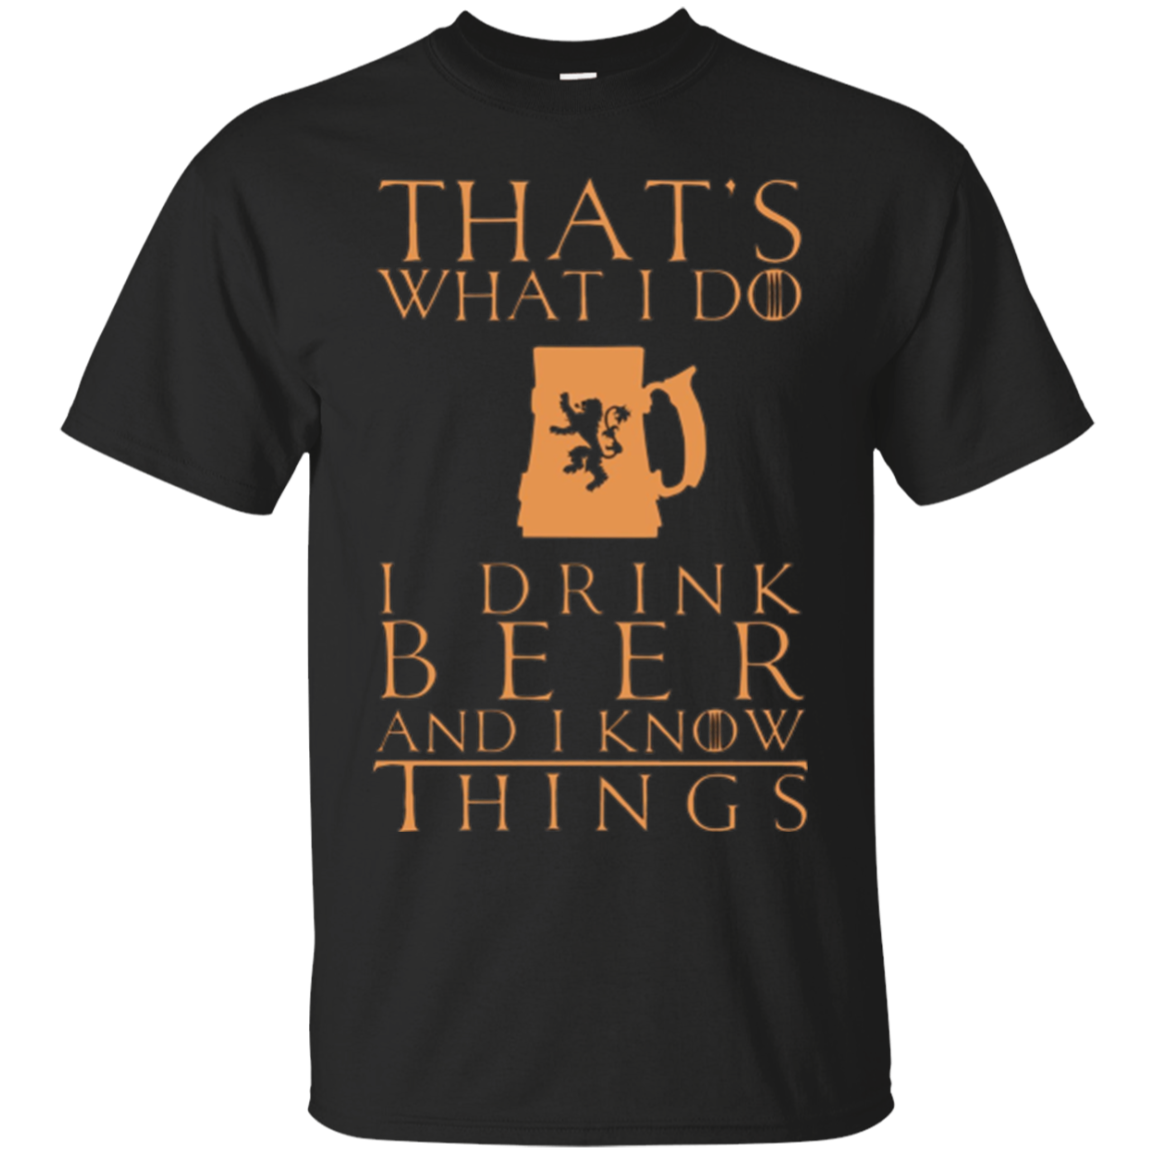 I Drink Beer And I Know Things Funny T-Shirt Cool Brew Gift